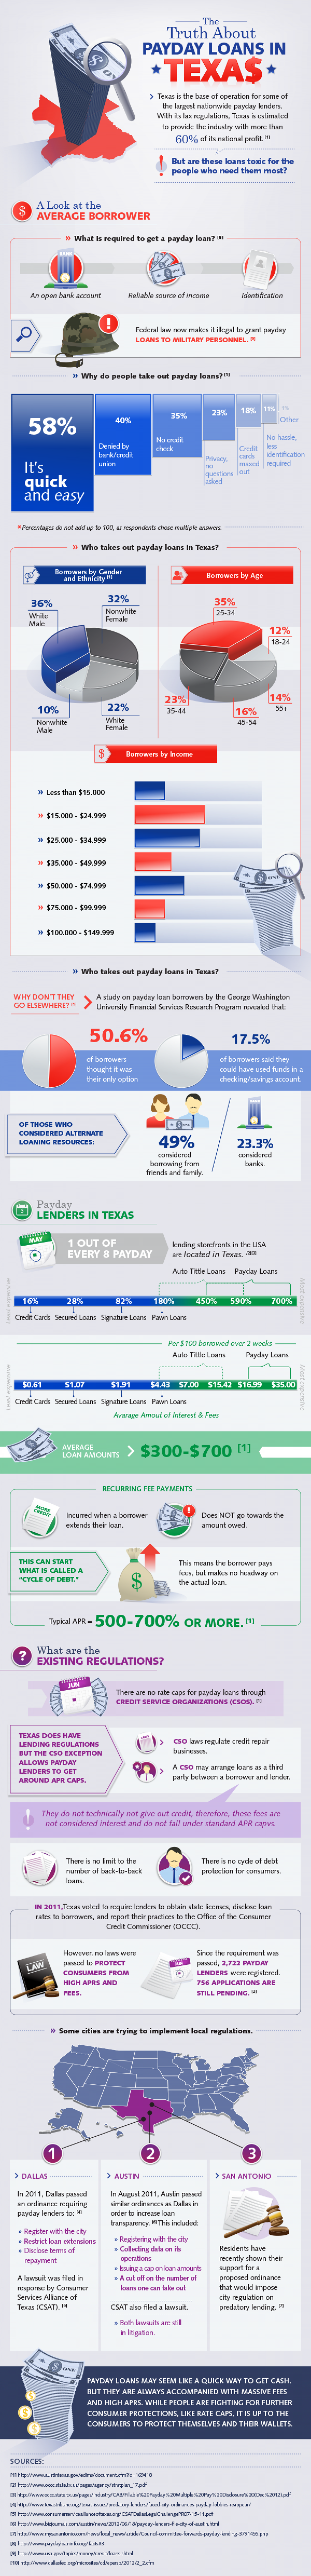 The Truth About PayDay Loans in Texas Infographic